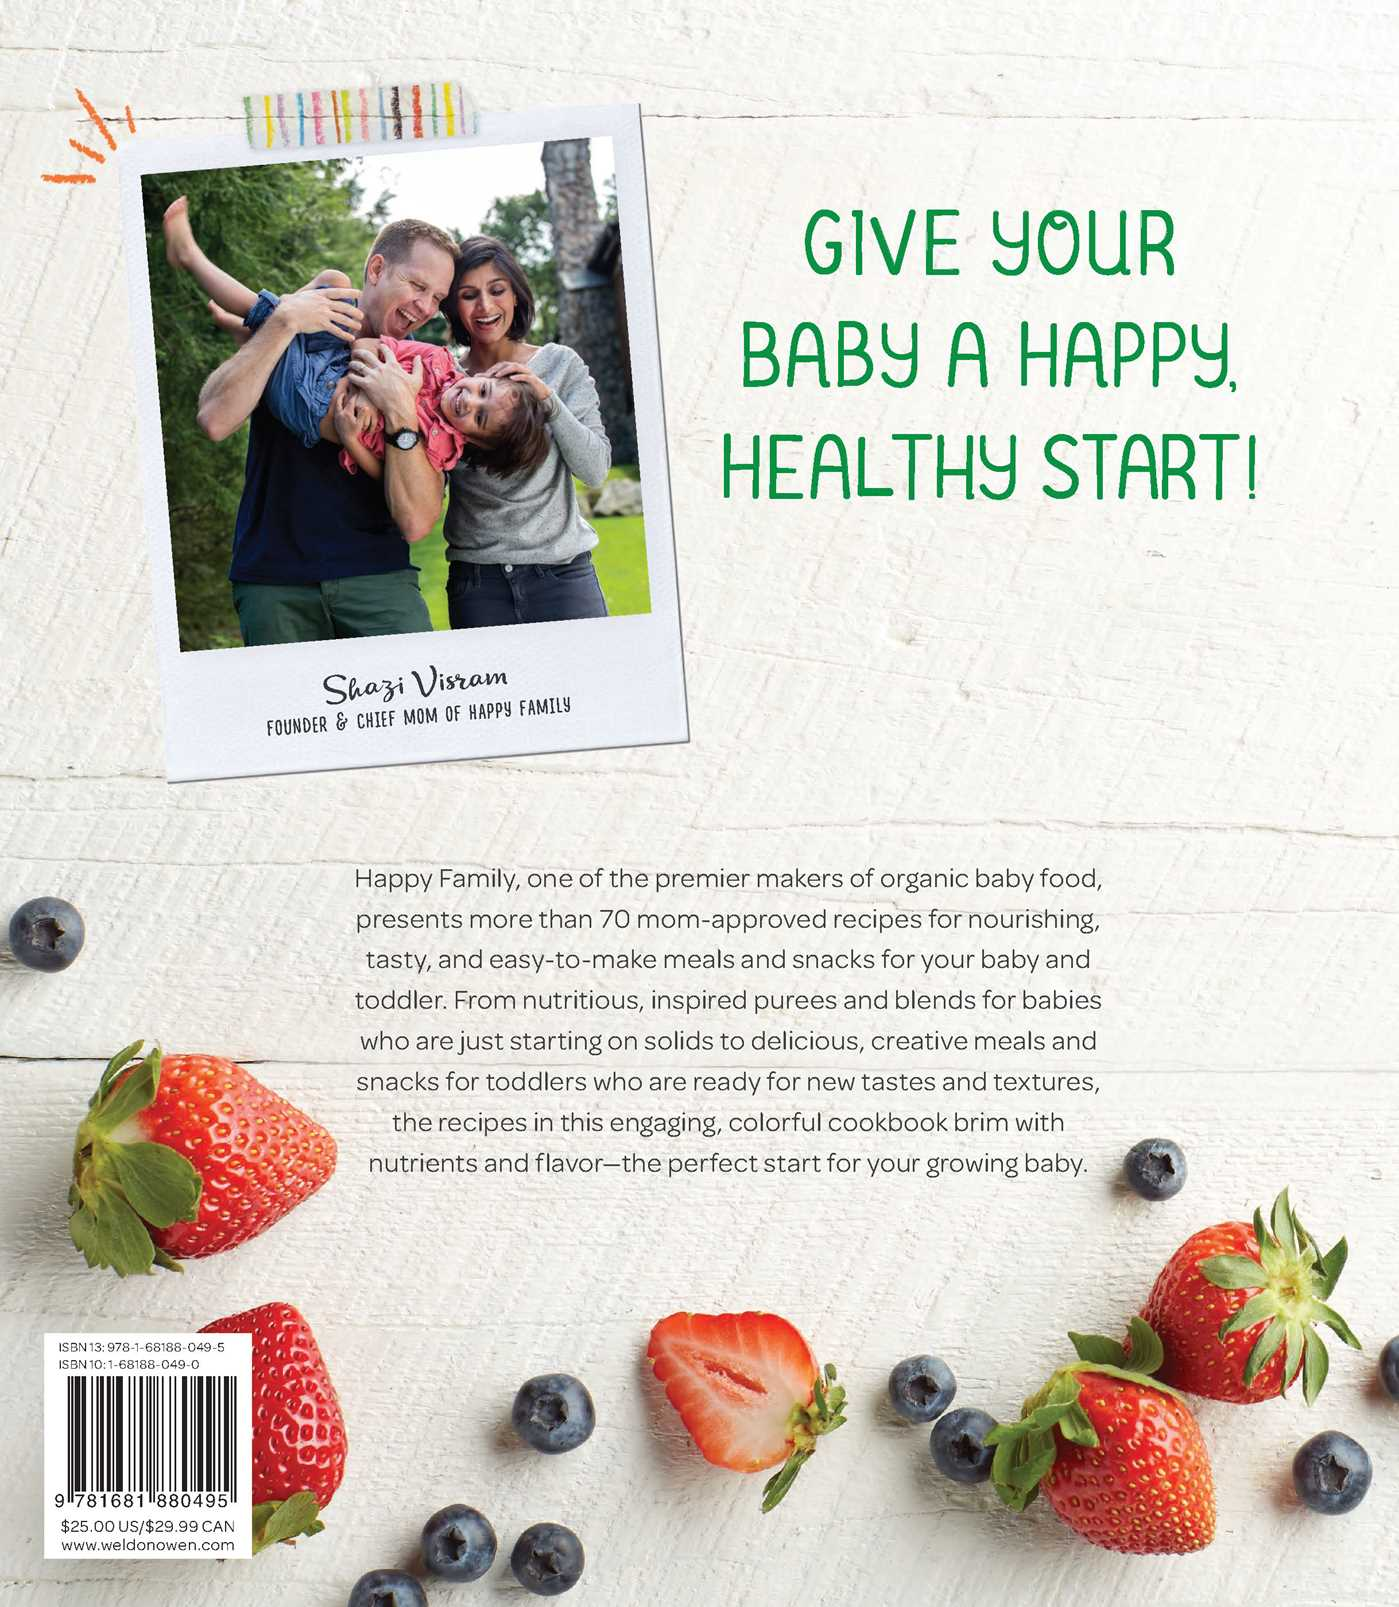 The happy family organic superfoods cookbook for baby toddler 9781681880495 hr back